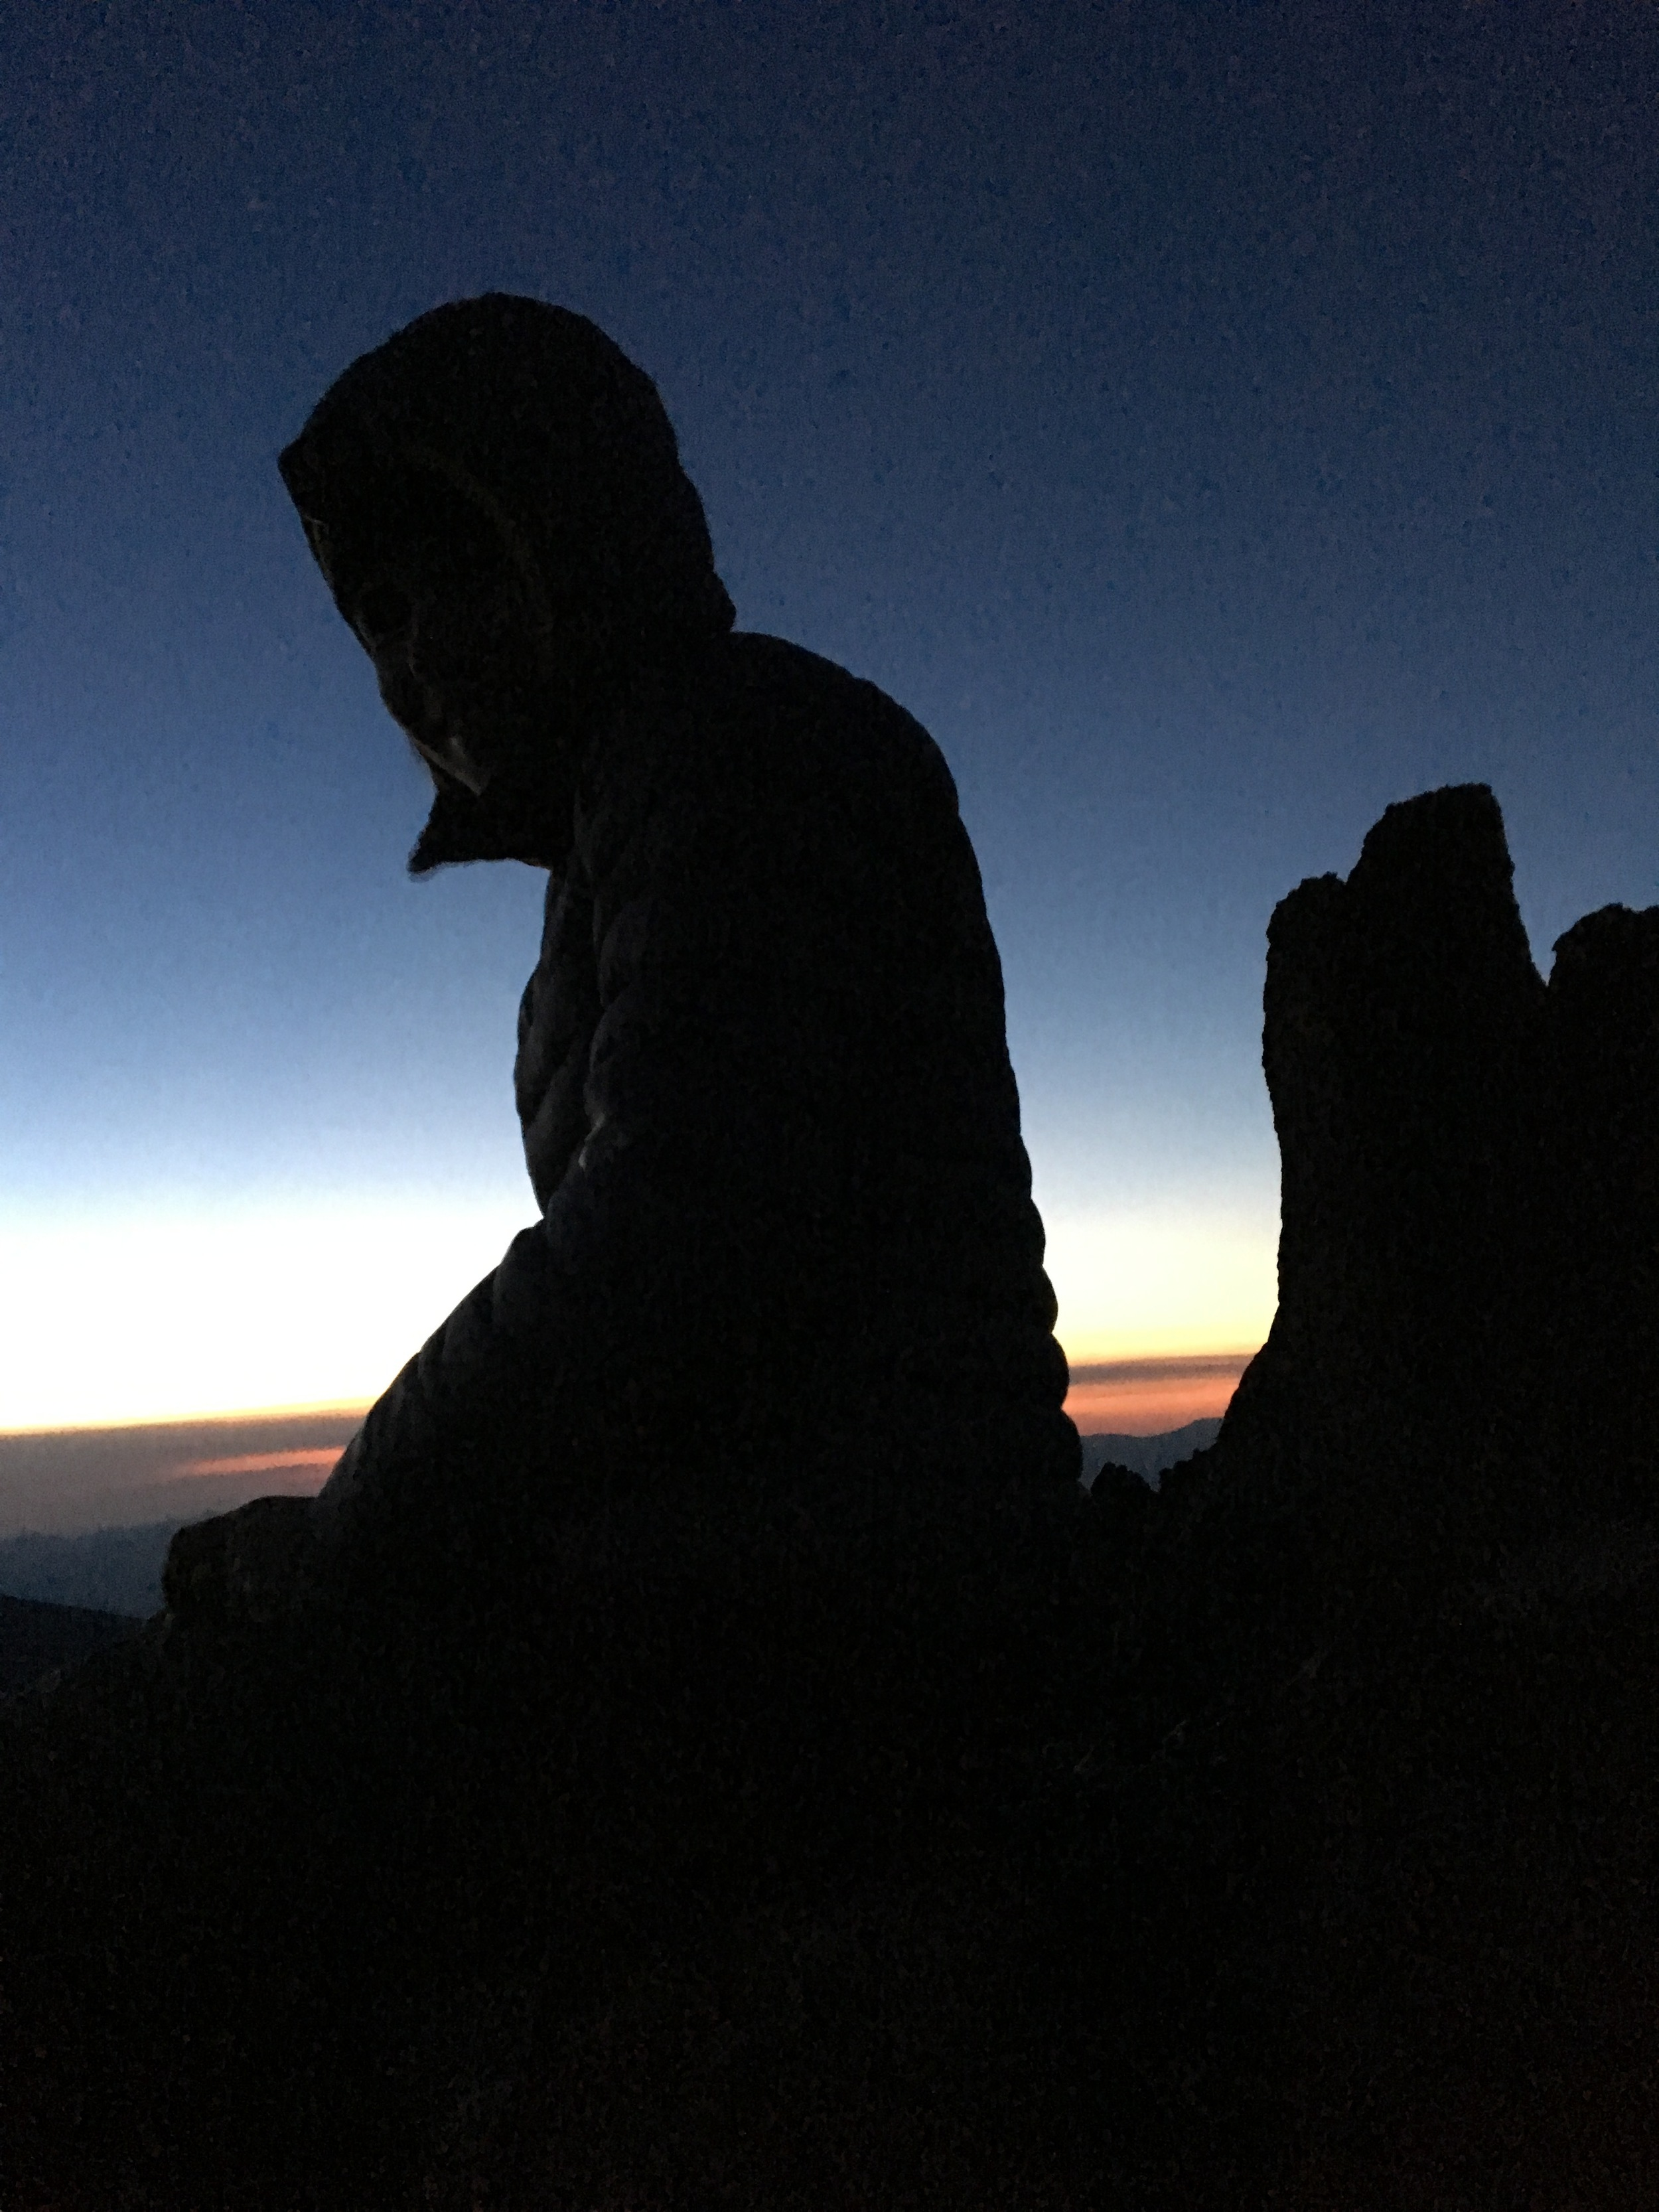 Sitting atop the rock spire we had climbed up to watch the sunrise